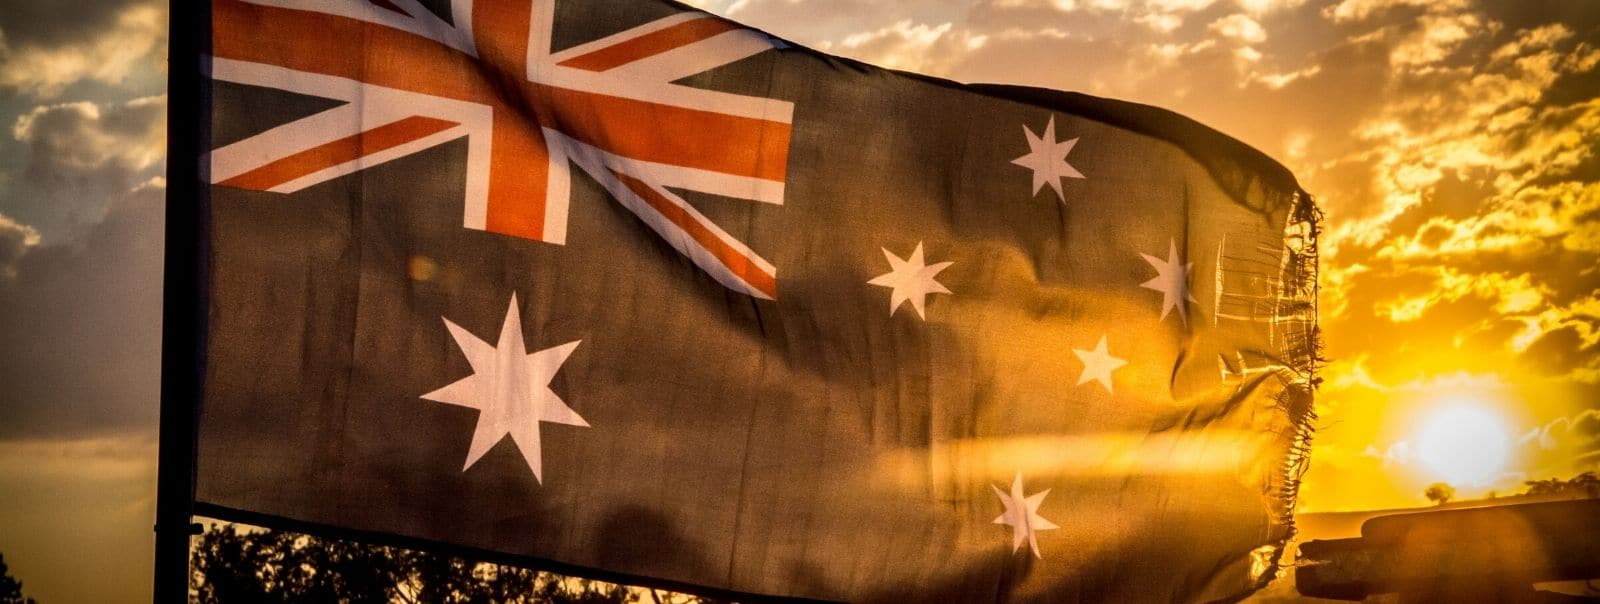 Sunset shining through Australian flags and national emblems of Australia